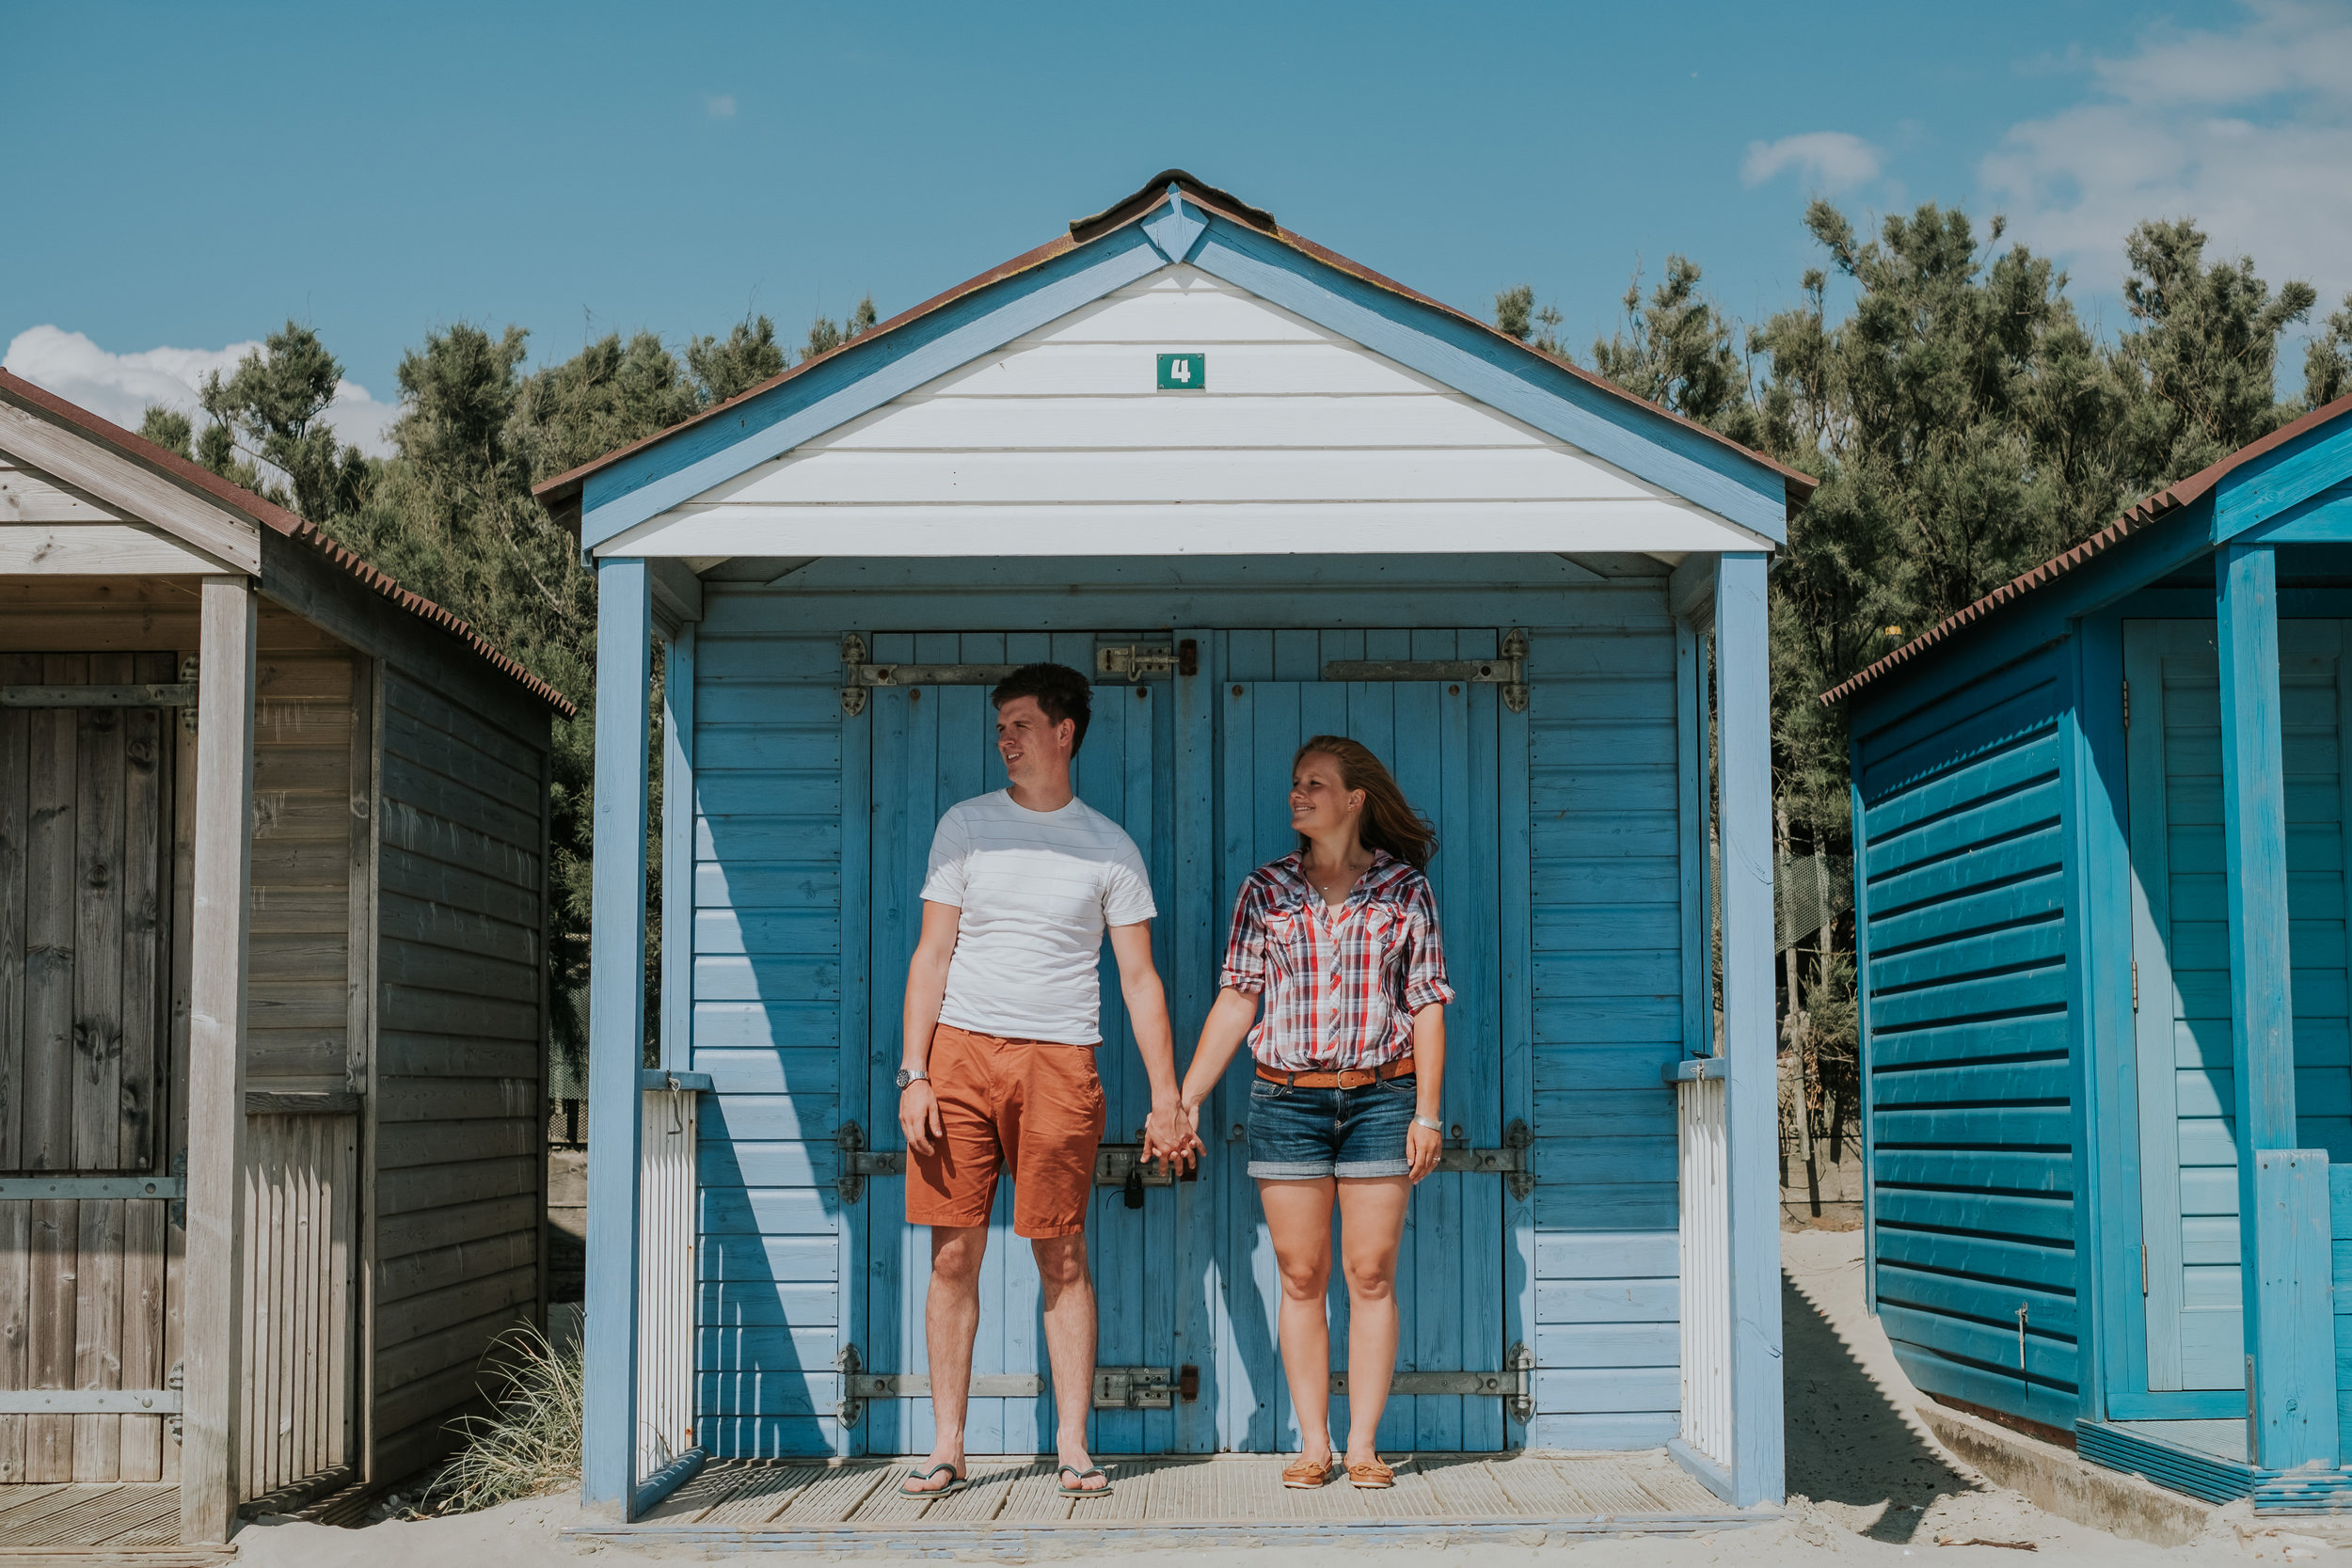 West Wittering Engagement Shoot Sussex Wedding Photographer Southend Barns Joanna Nicole Photography Cool Creative Fun Alternative 17.jpg